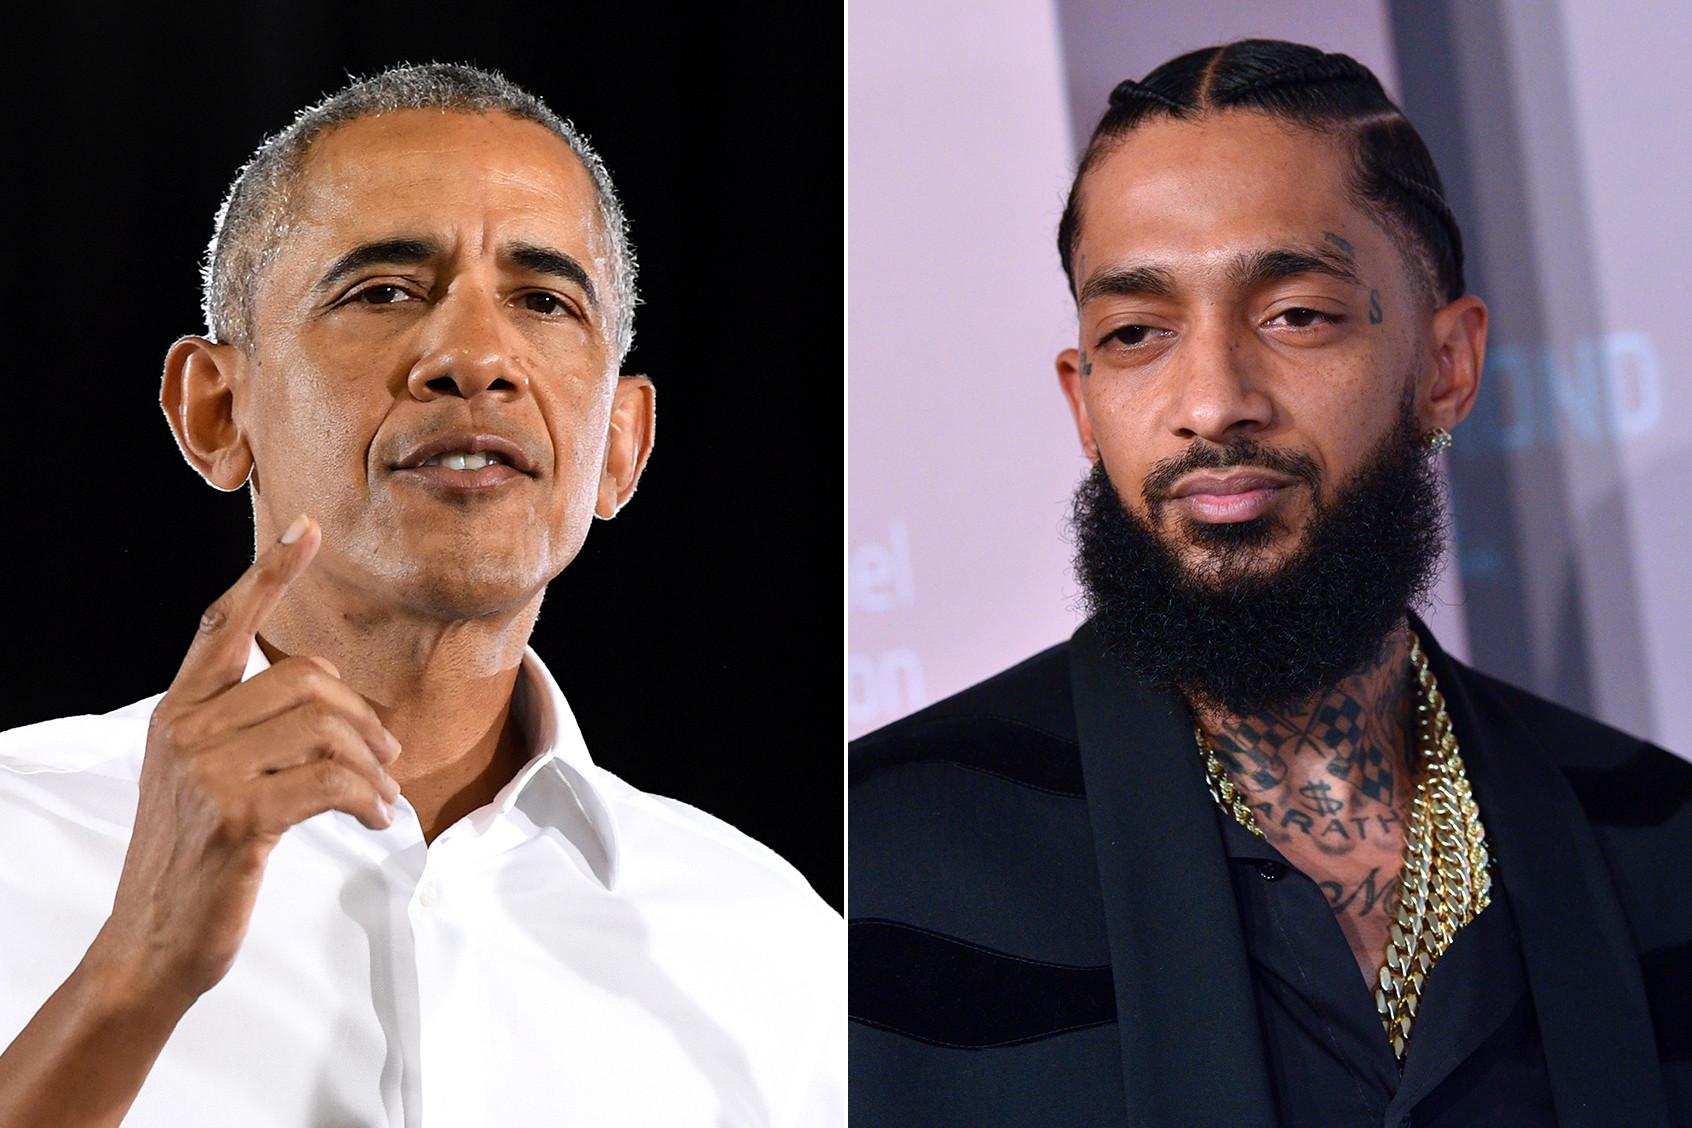 Former President of the United States of America Barack Obama celebrates the music, life, and legacy of Nipsey Hussle in an open letter, which Karen Civil shared on Twitter and read at a memorial service in Los Angeles Thursday.